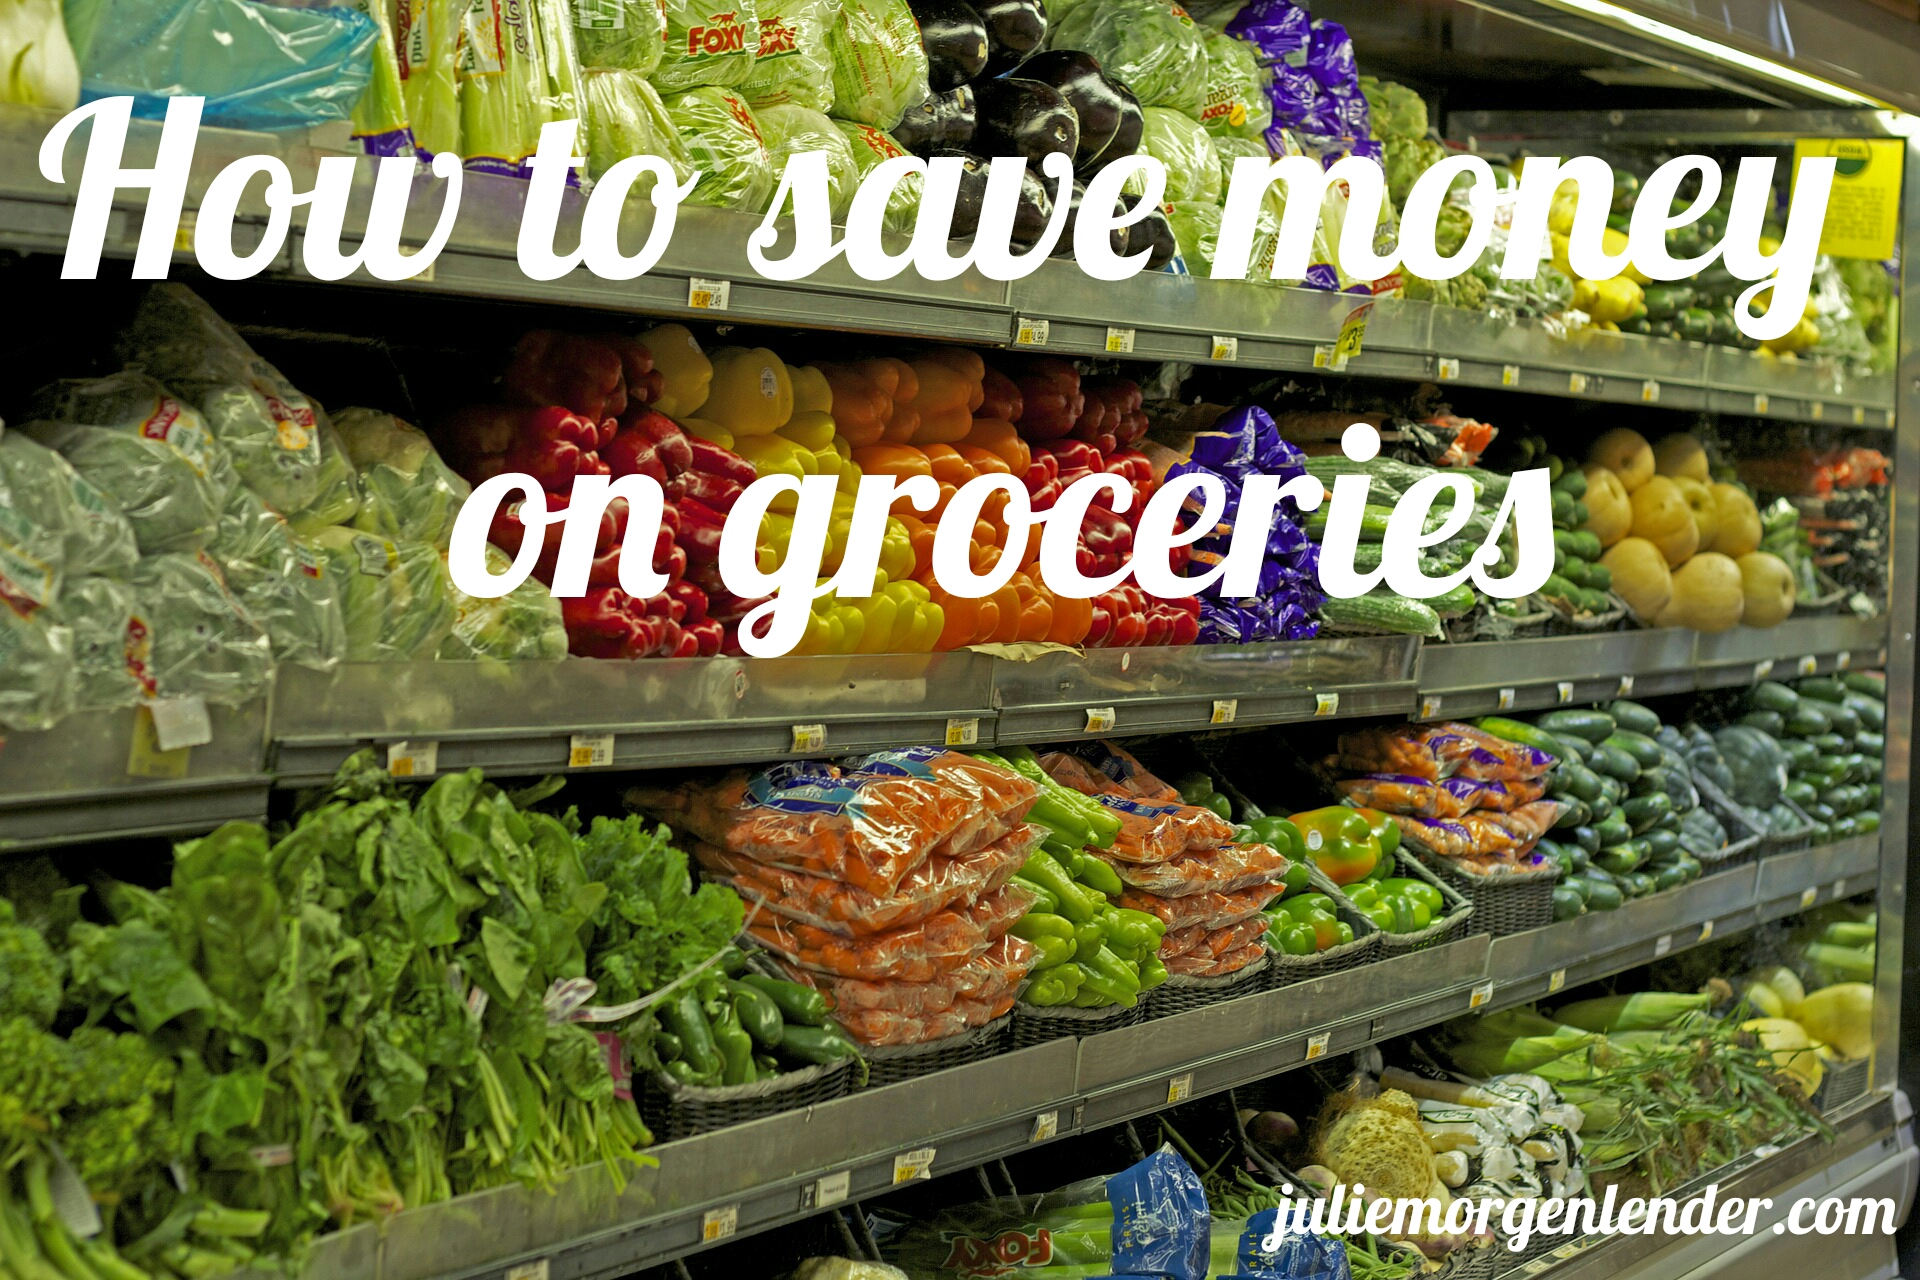 How would you spend $100 on groceries?